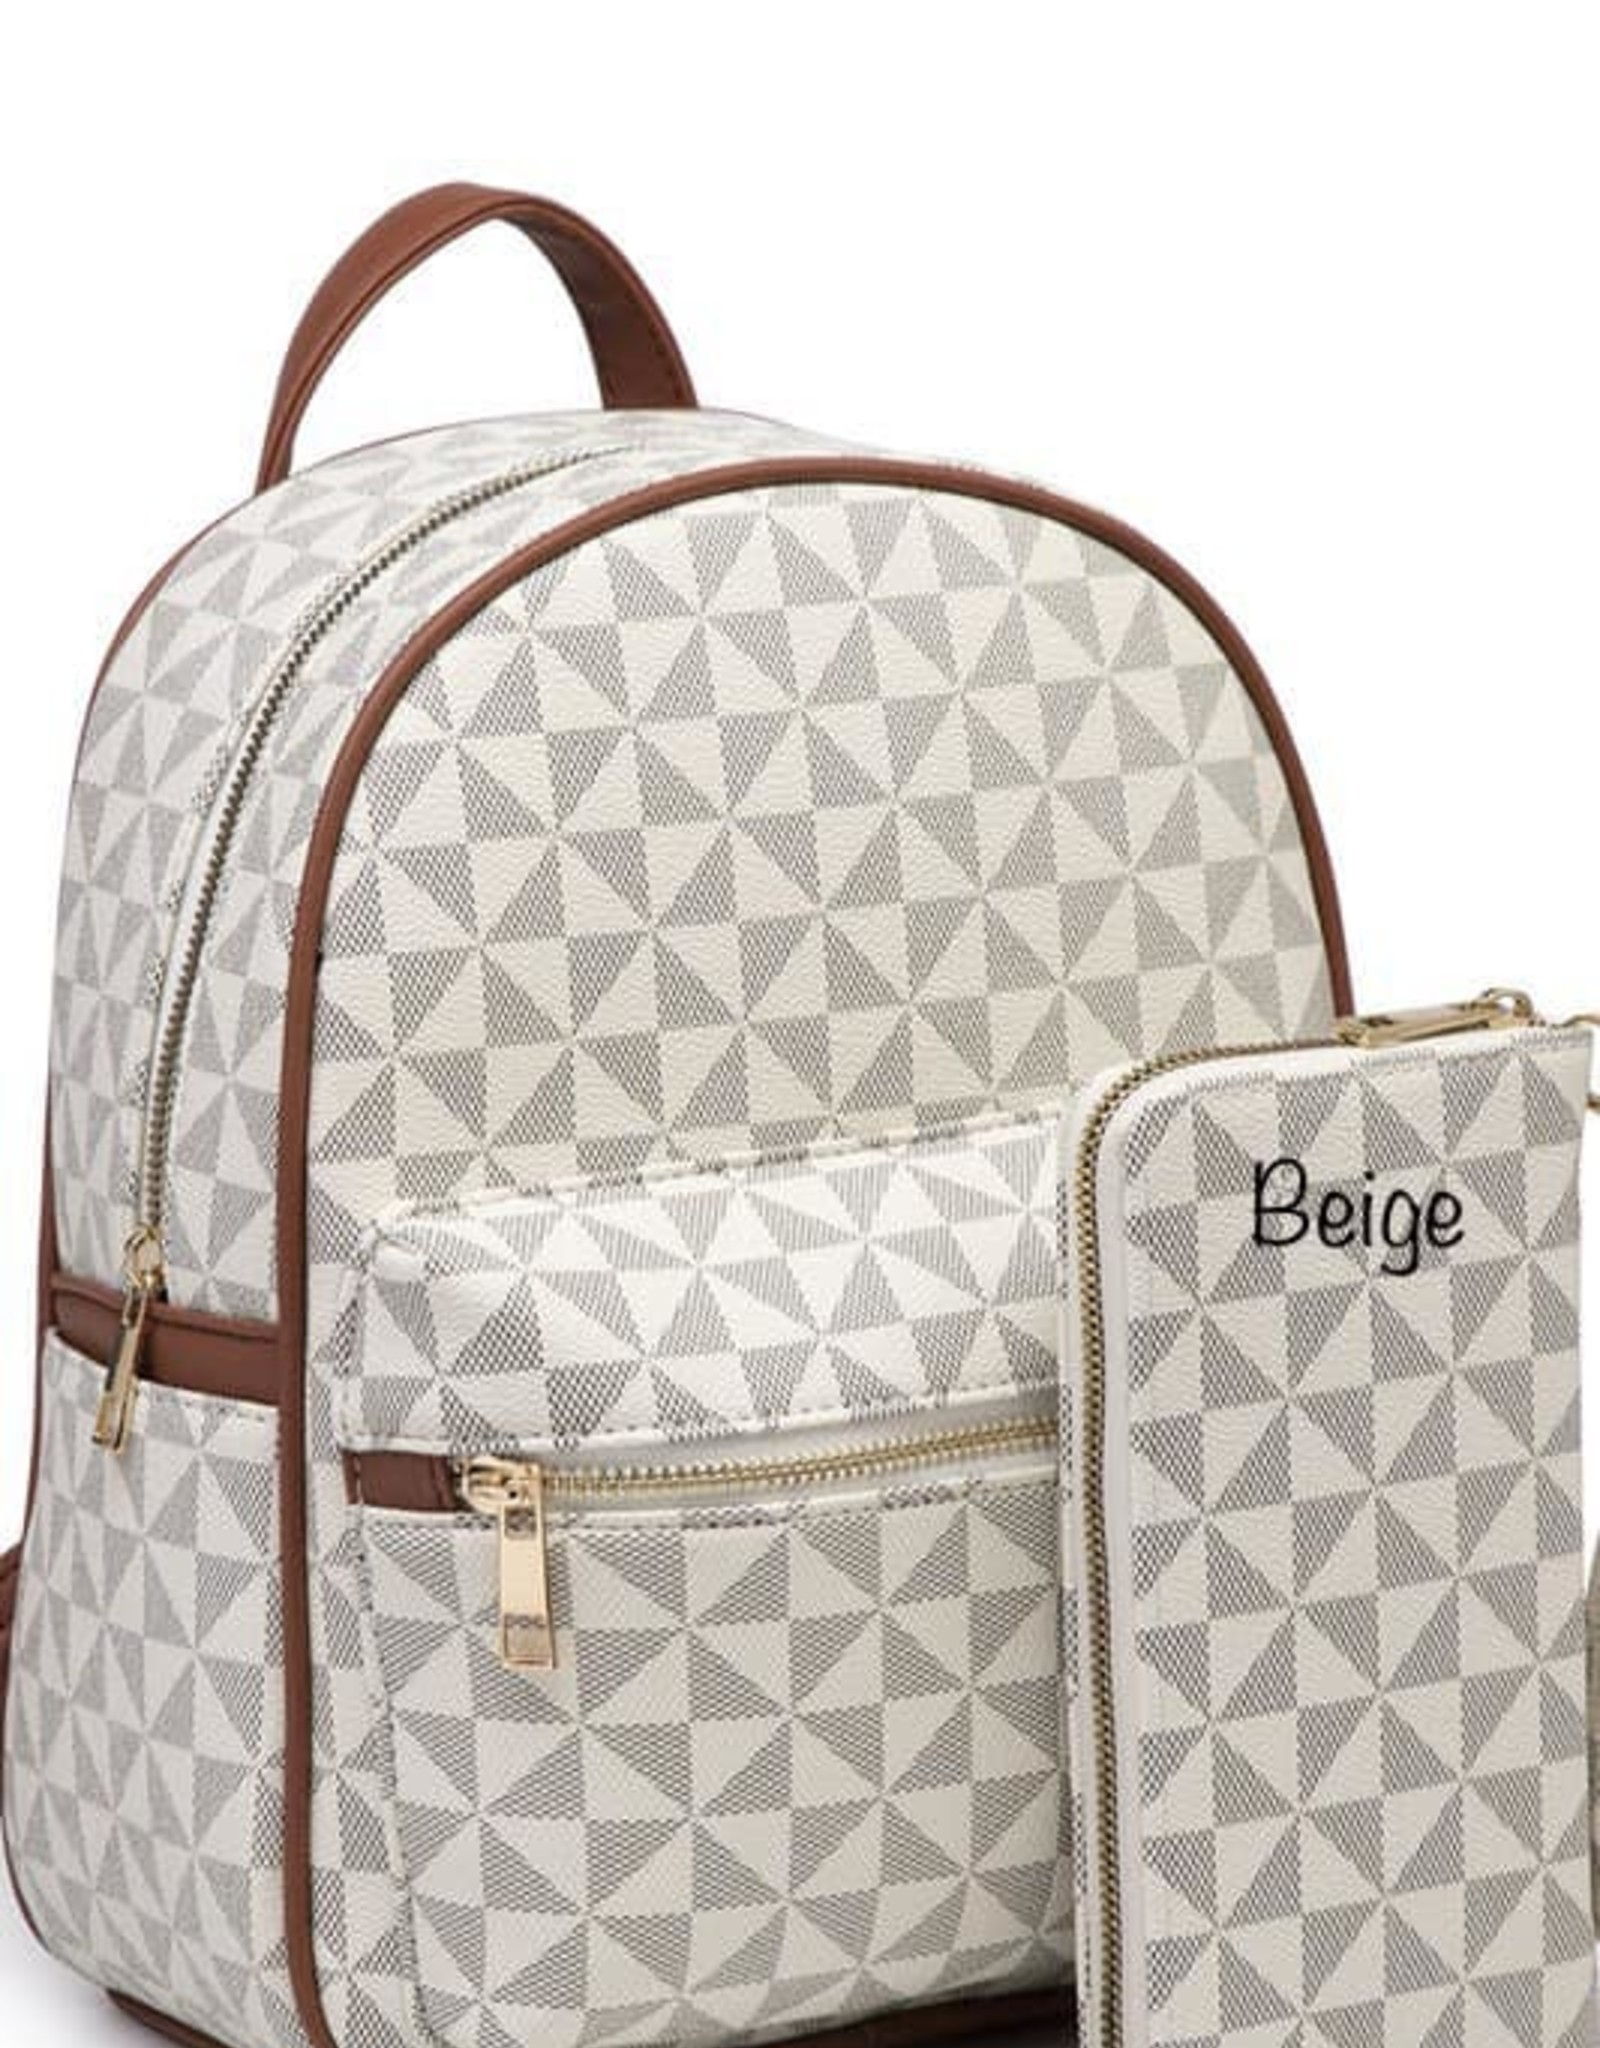 Monogram Classic 2-in-1 Backpack